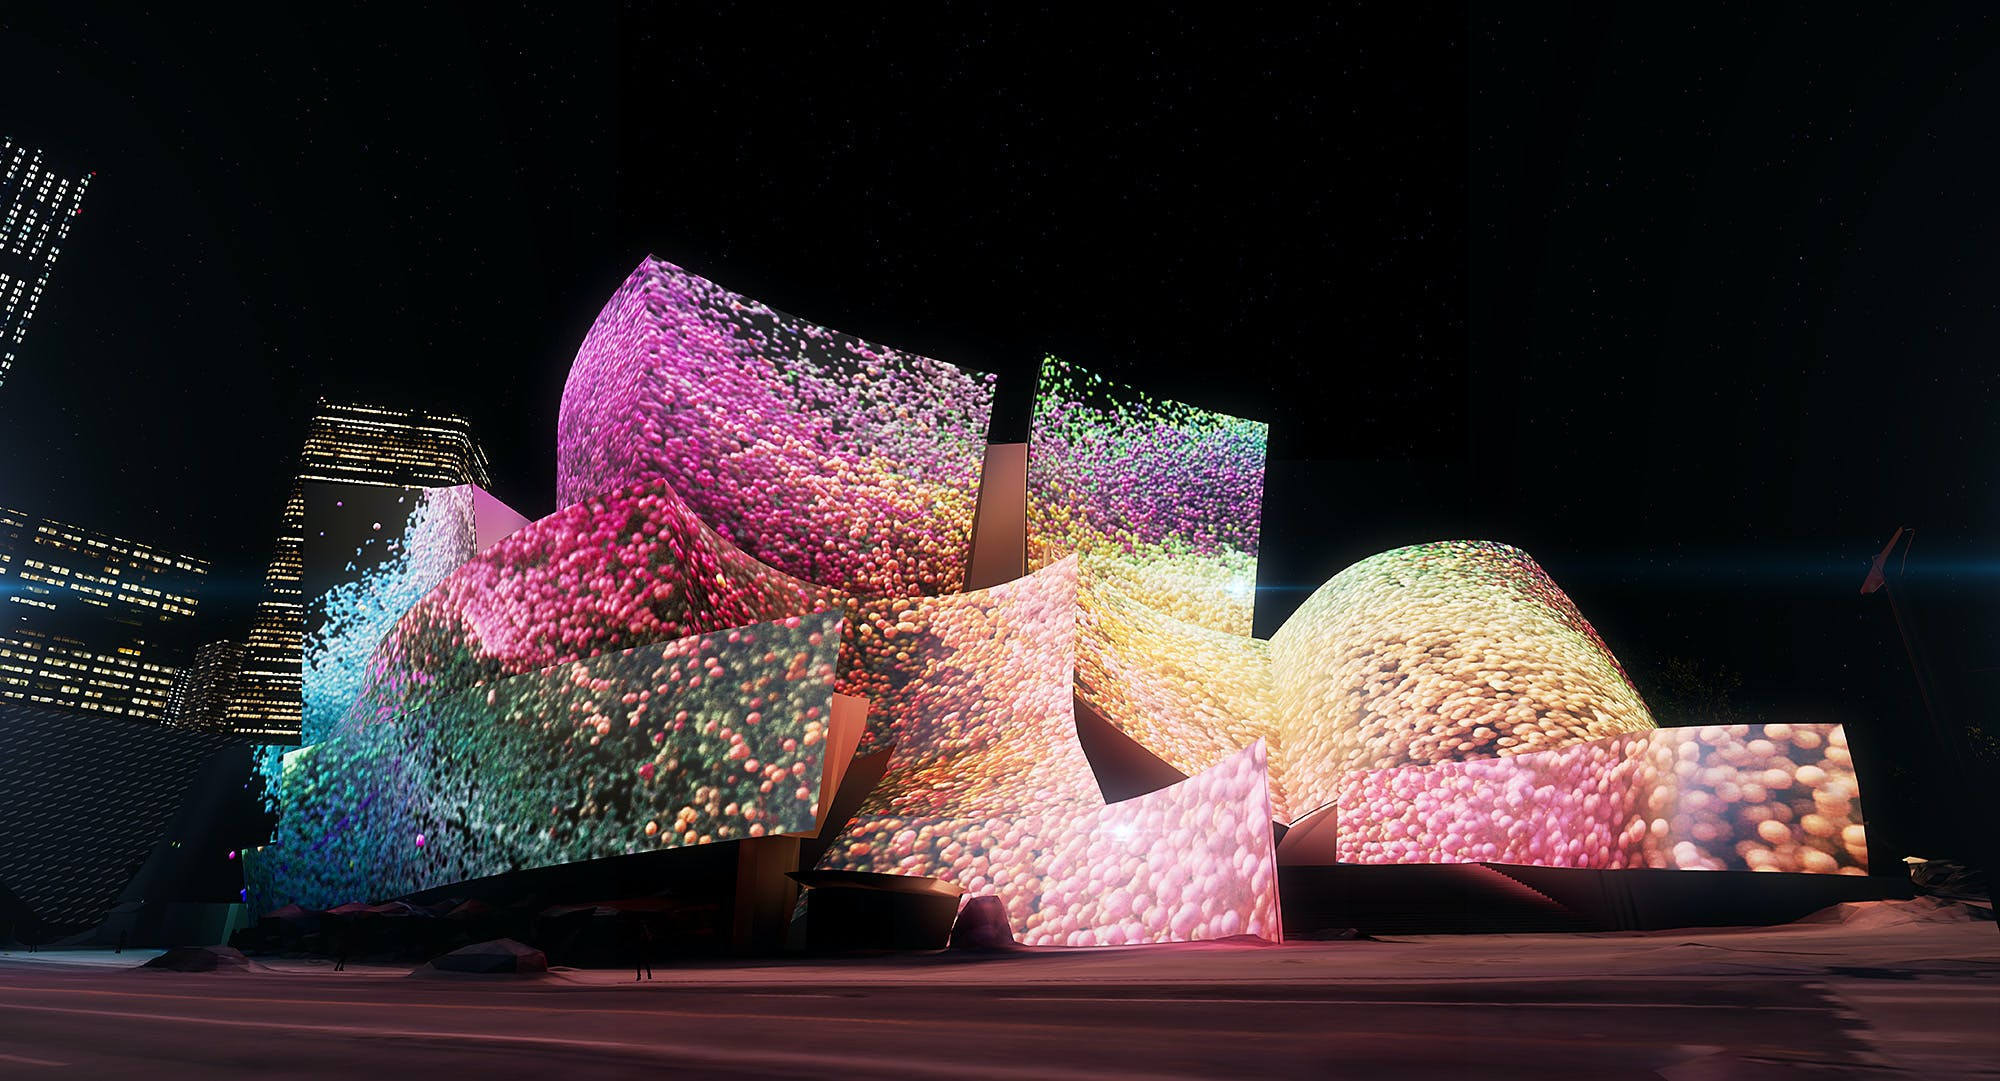 Refik Anadol To Cover Walt Disney Concert Hall With Vivid Data